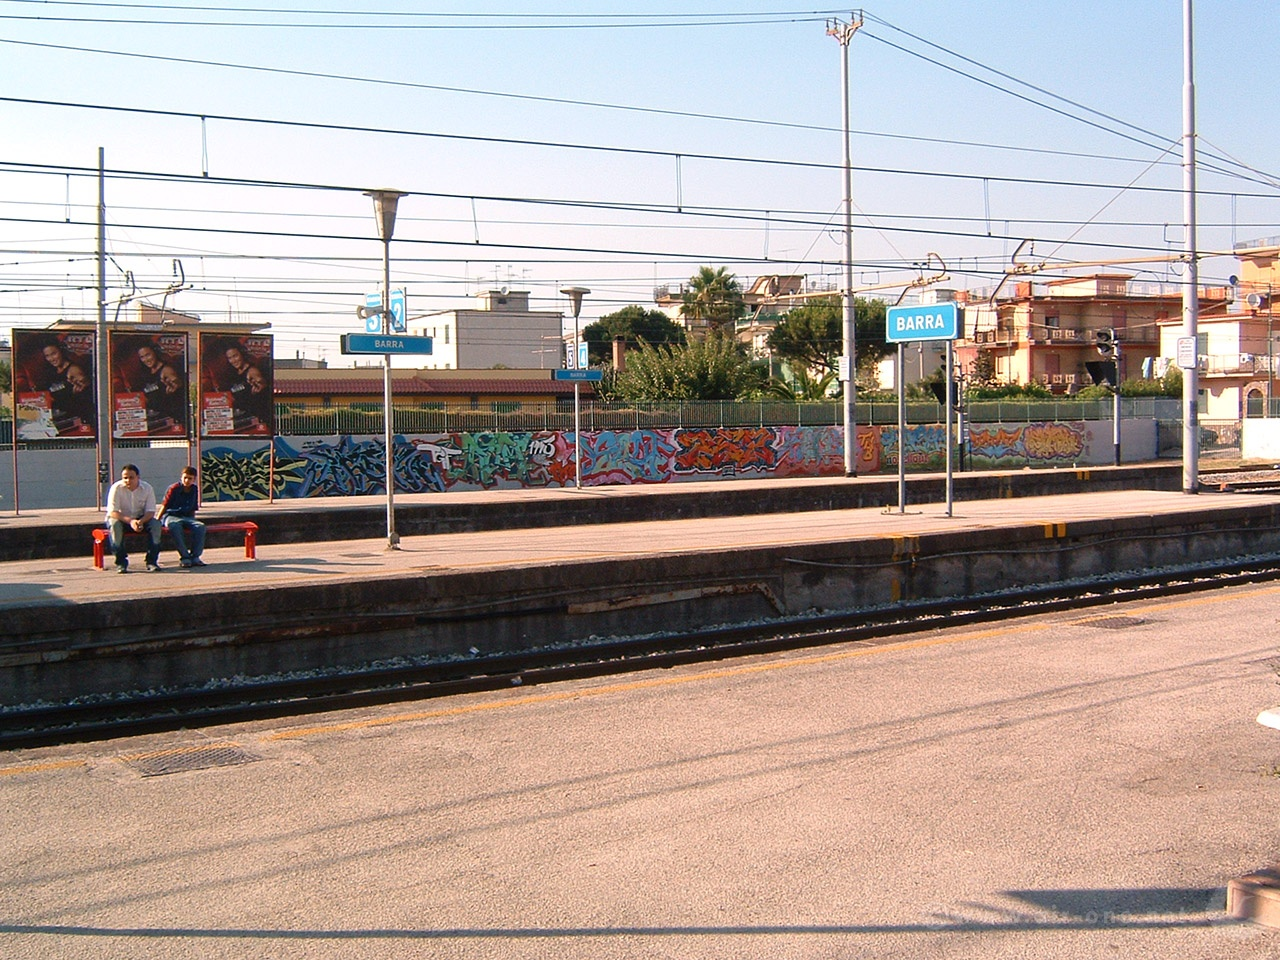 Barra station: Circum Writing - Napoli 2004